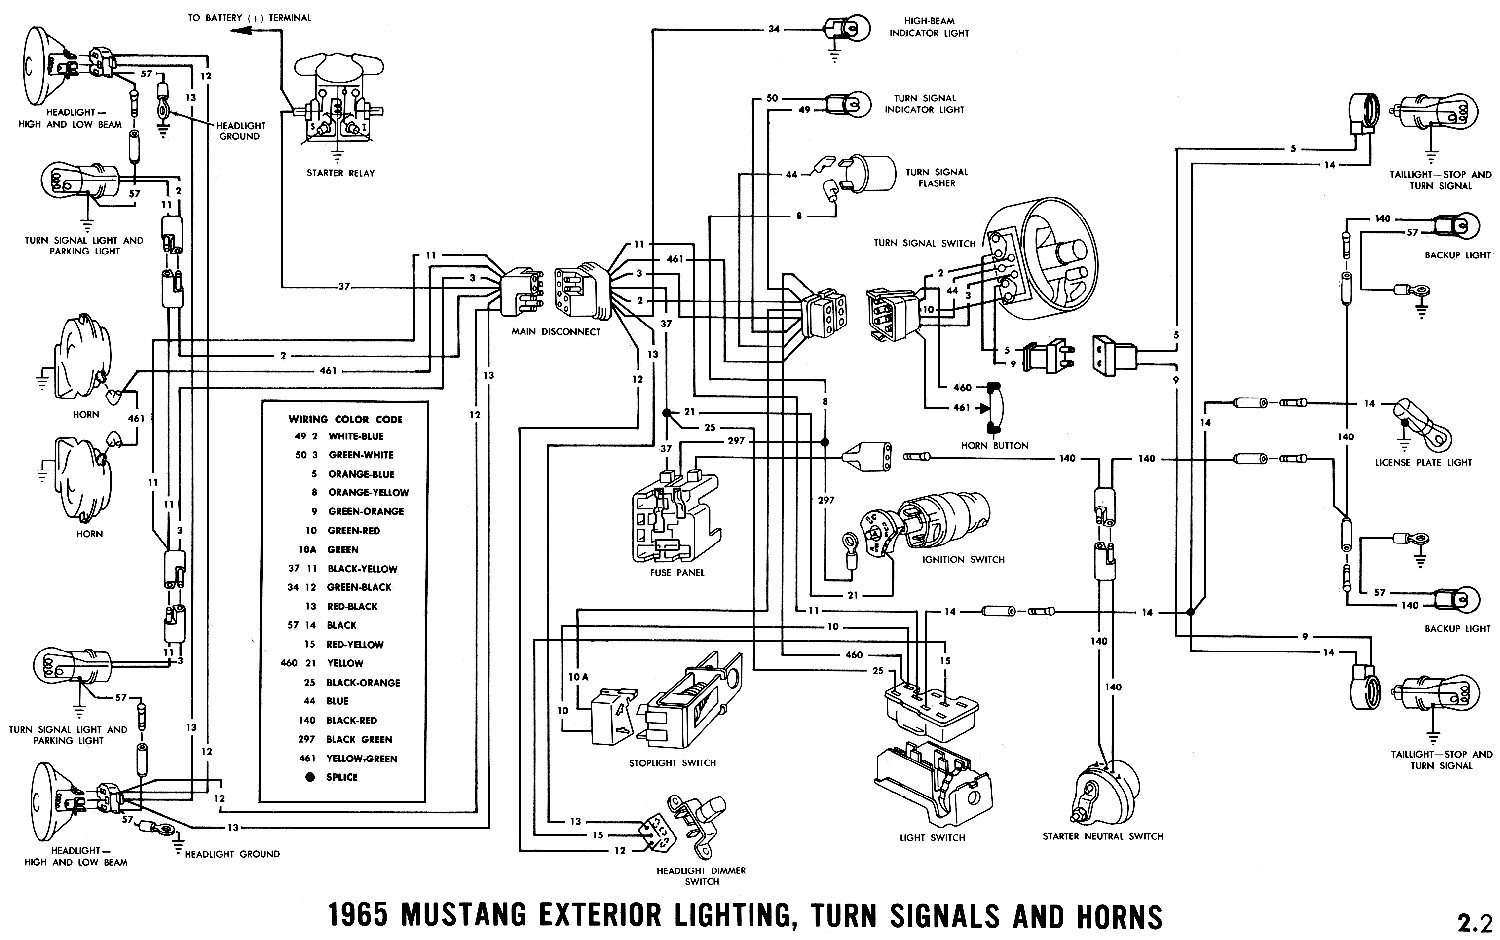 Underdash Vacuum Diagram Schematic Wiring Car Diagrams Archives Page 34 Of 45 Binatanicom 1969 Mustang Dash Search For U2022 Rh Stephenpoon Co Chevy S10